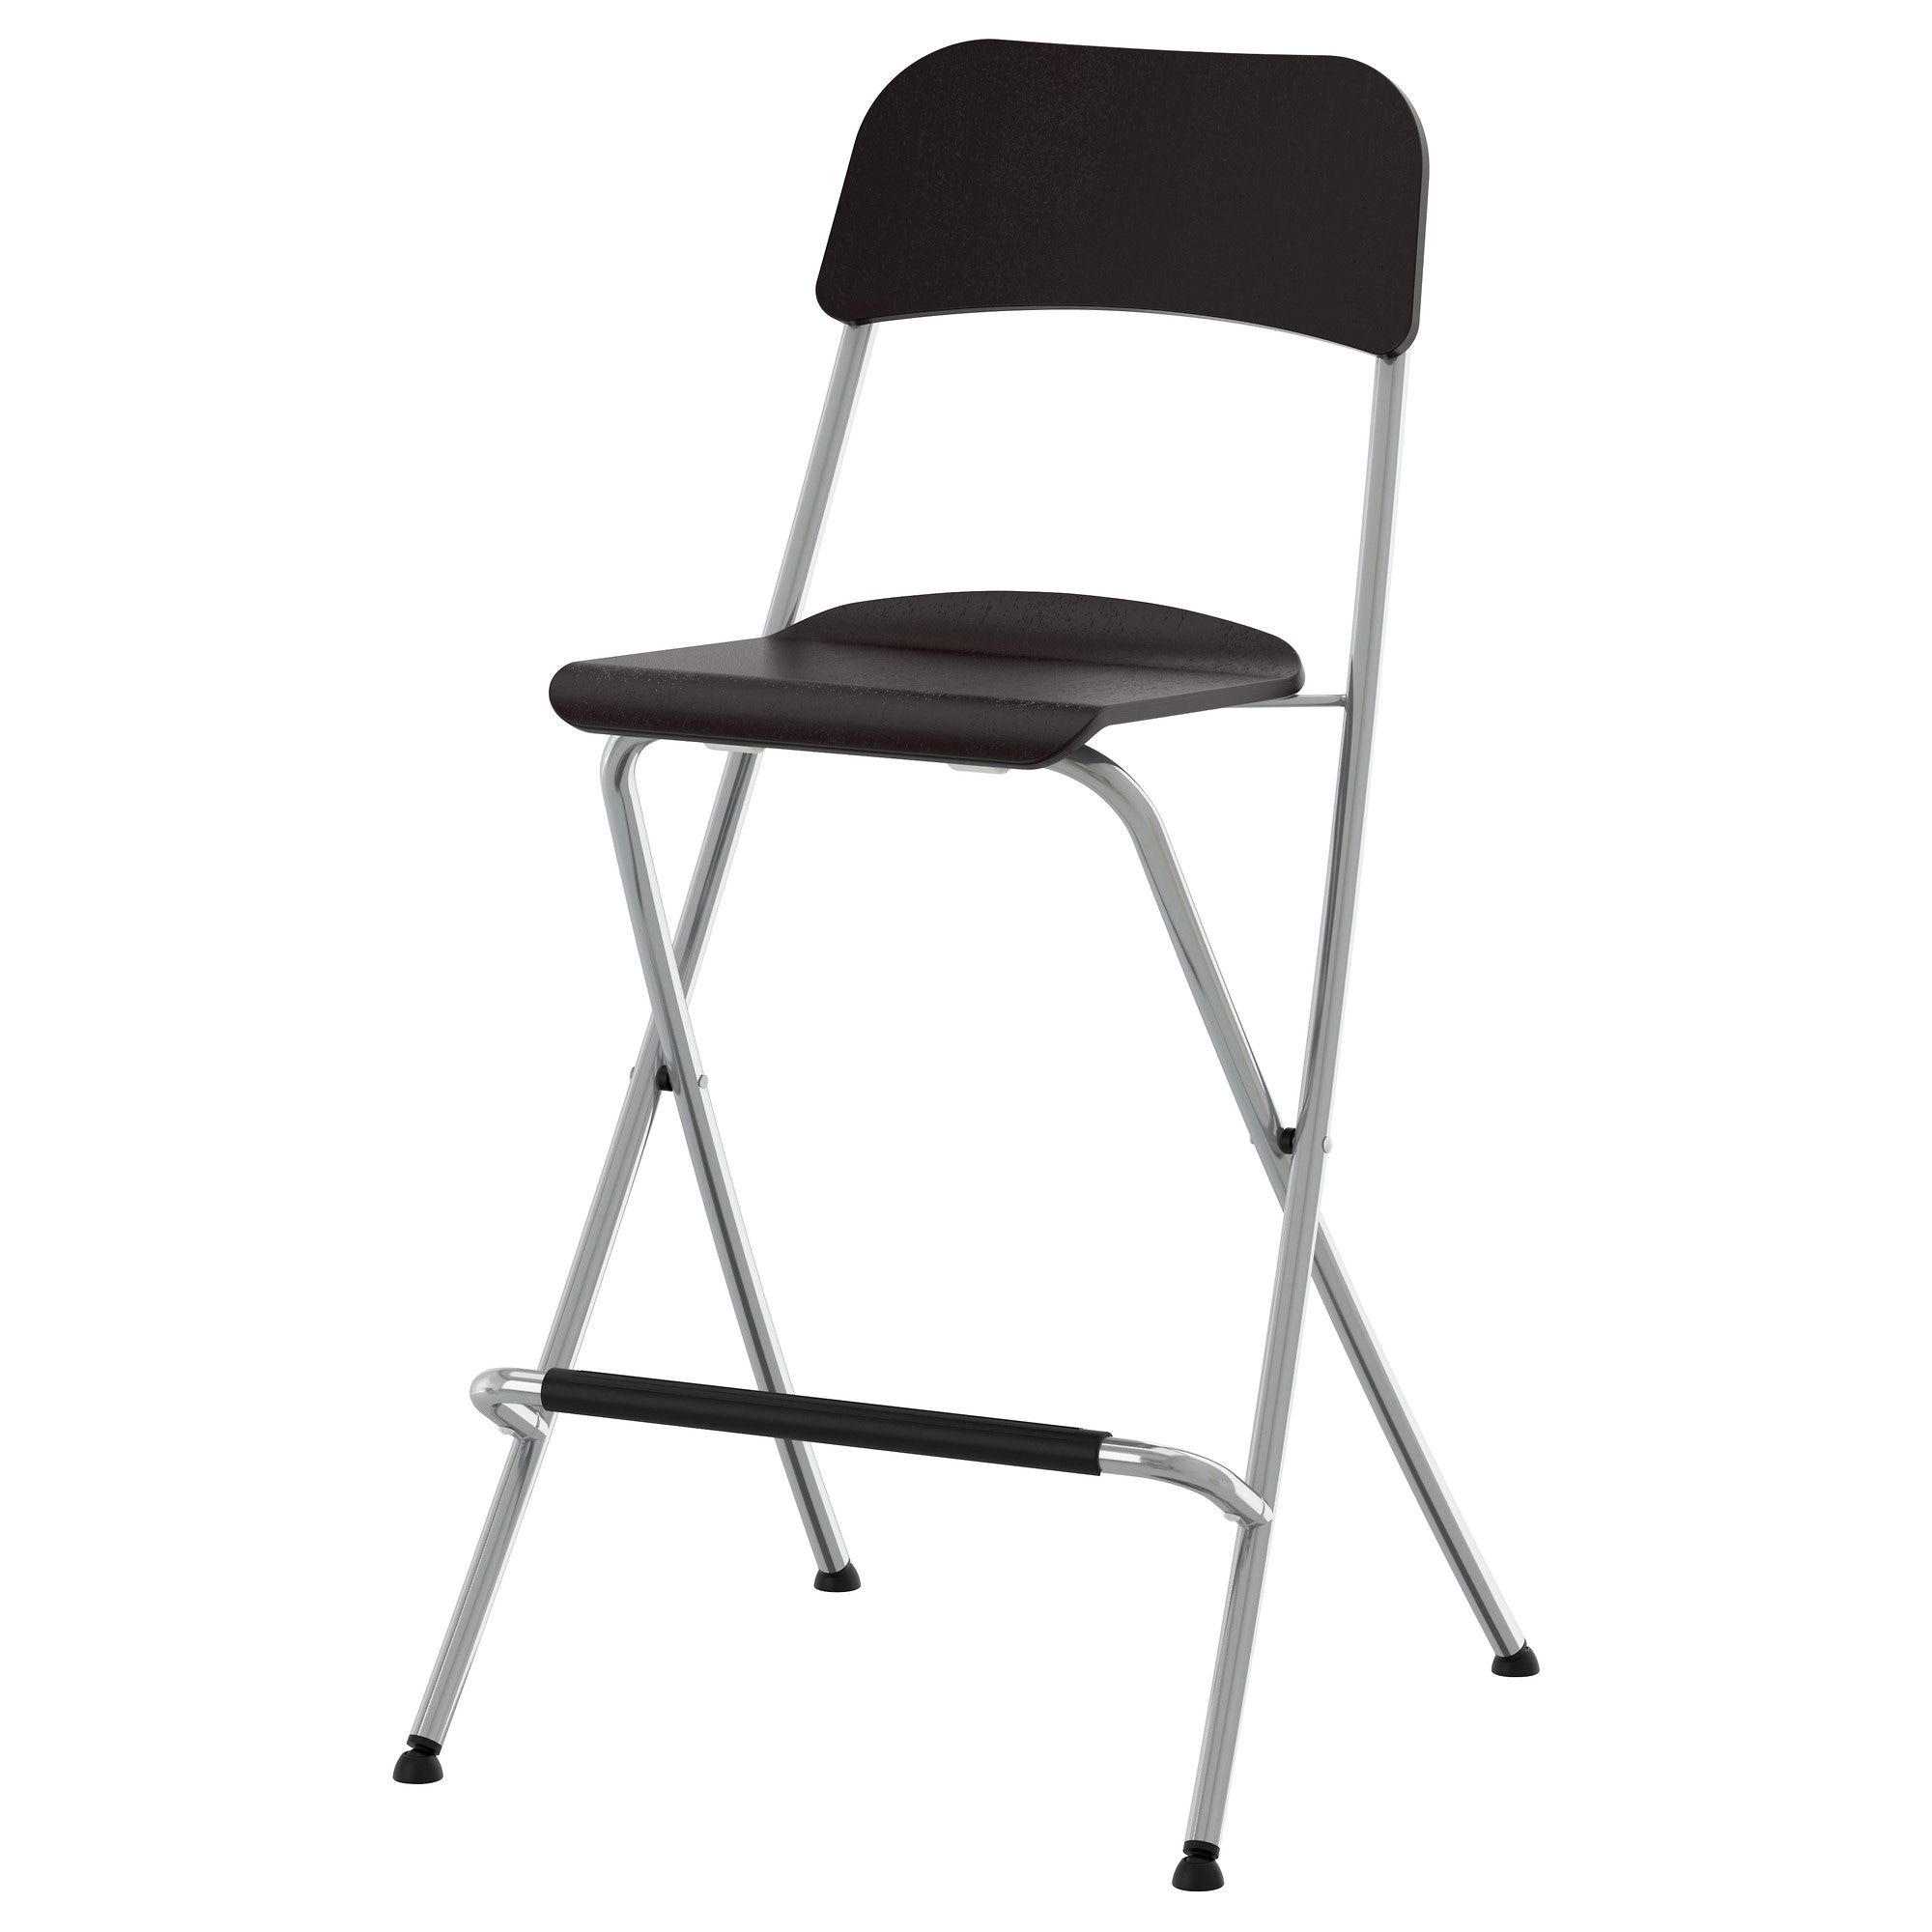 FRANKLIN bar stool with backrest, foldable, brown-black, silver color  Tested for